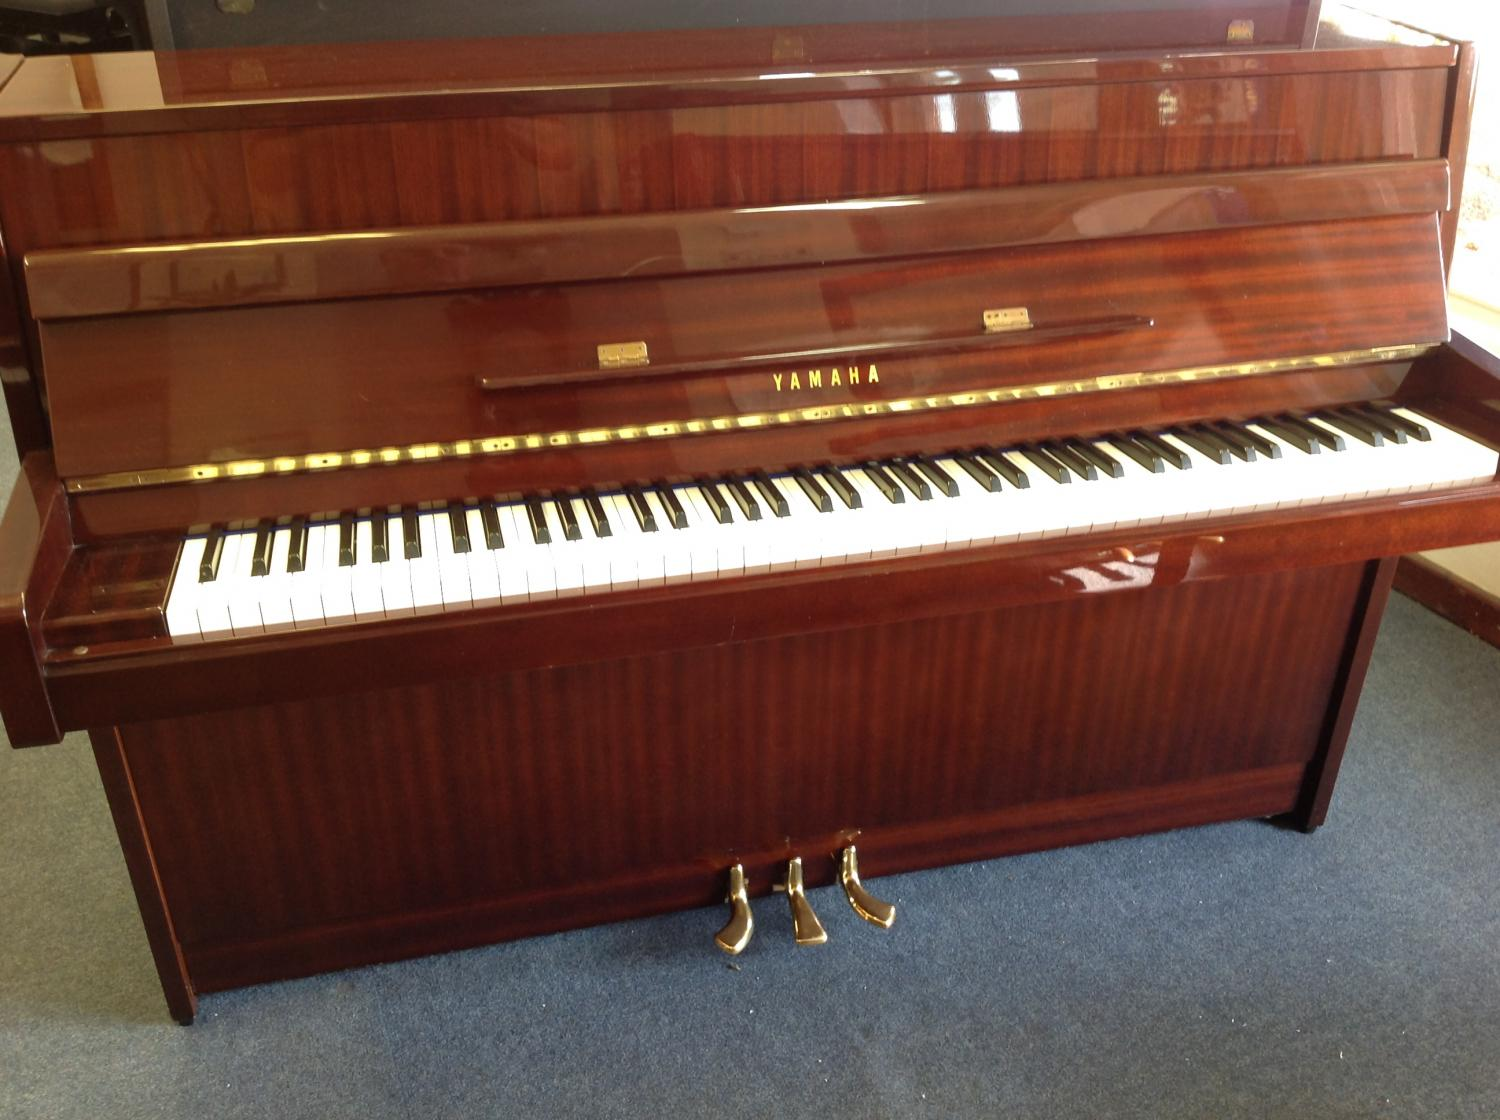 Yamaha modern upright piano for sale in modern pianos for sale for Small upright piano dimensions